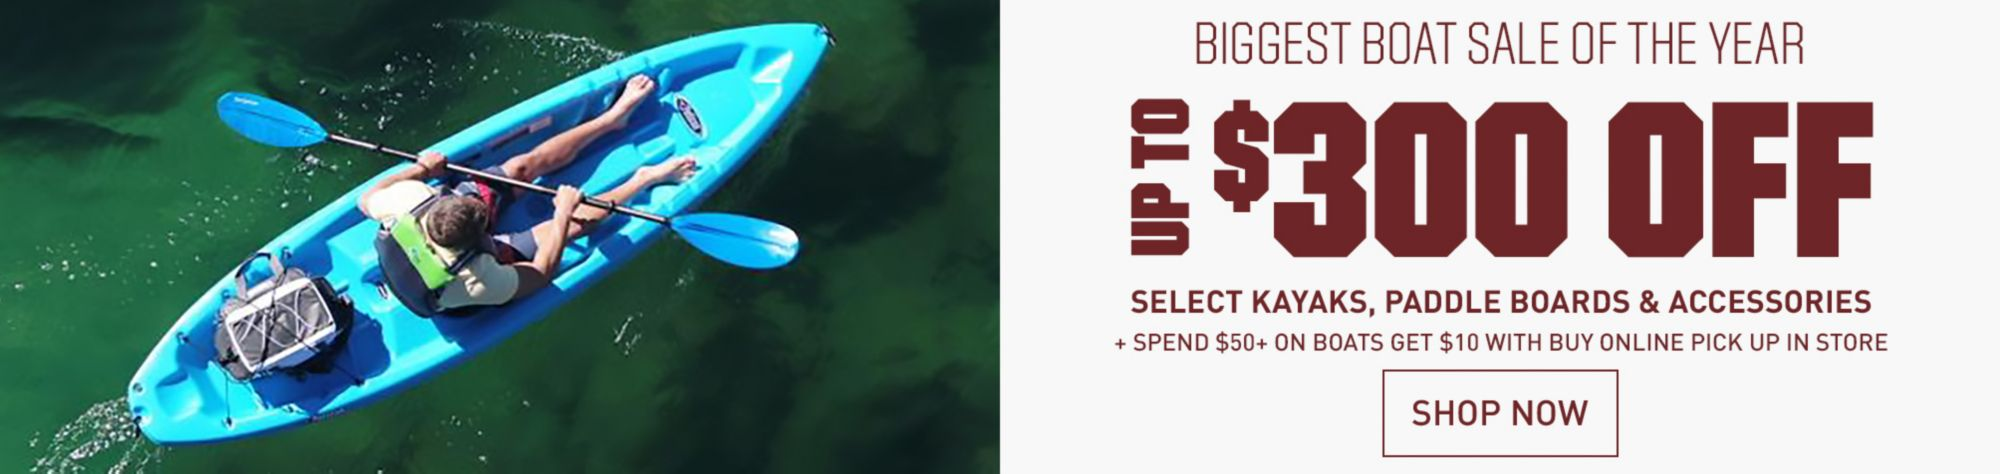 Biggest Boat Sale of the Year - Up To $300 Off Select Kayaks, Paddle Boards & Accessories - Shop Now